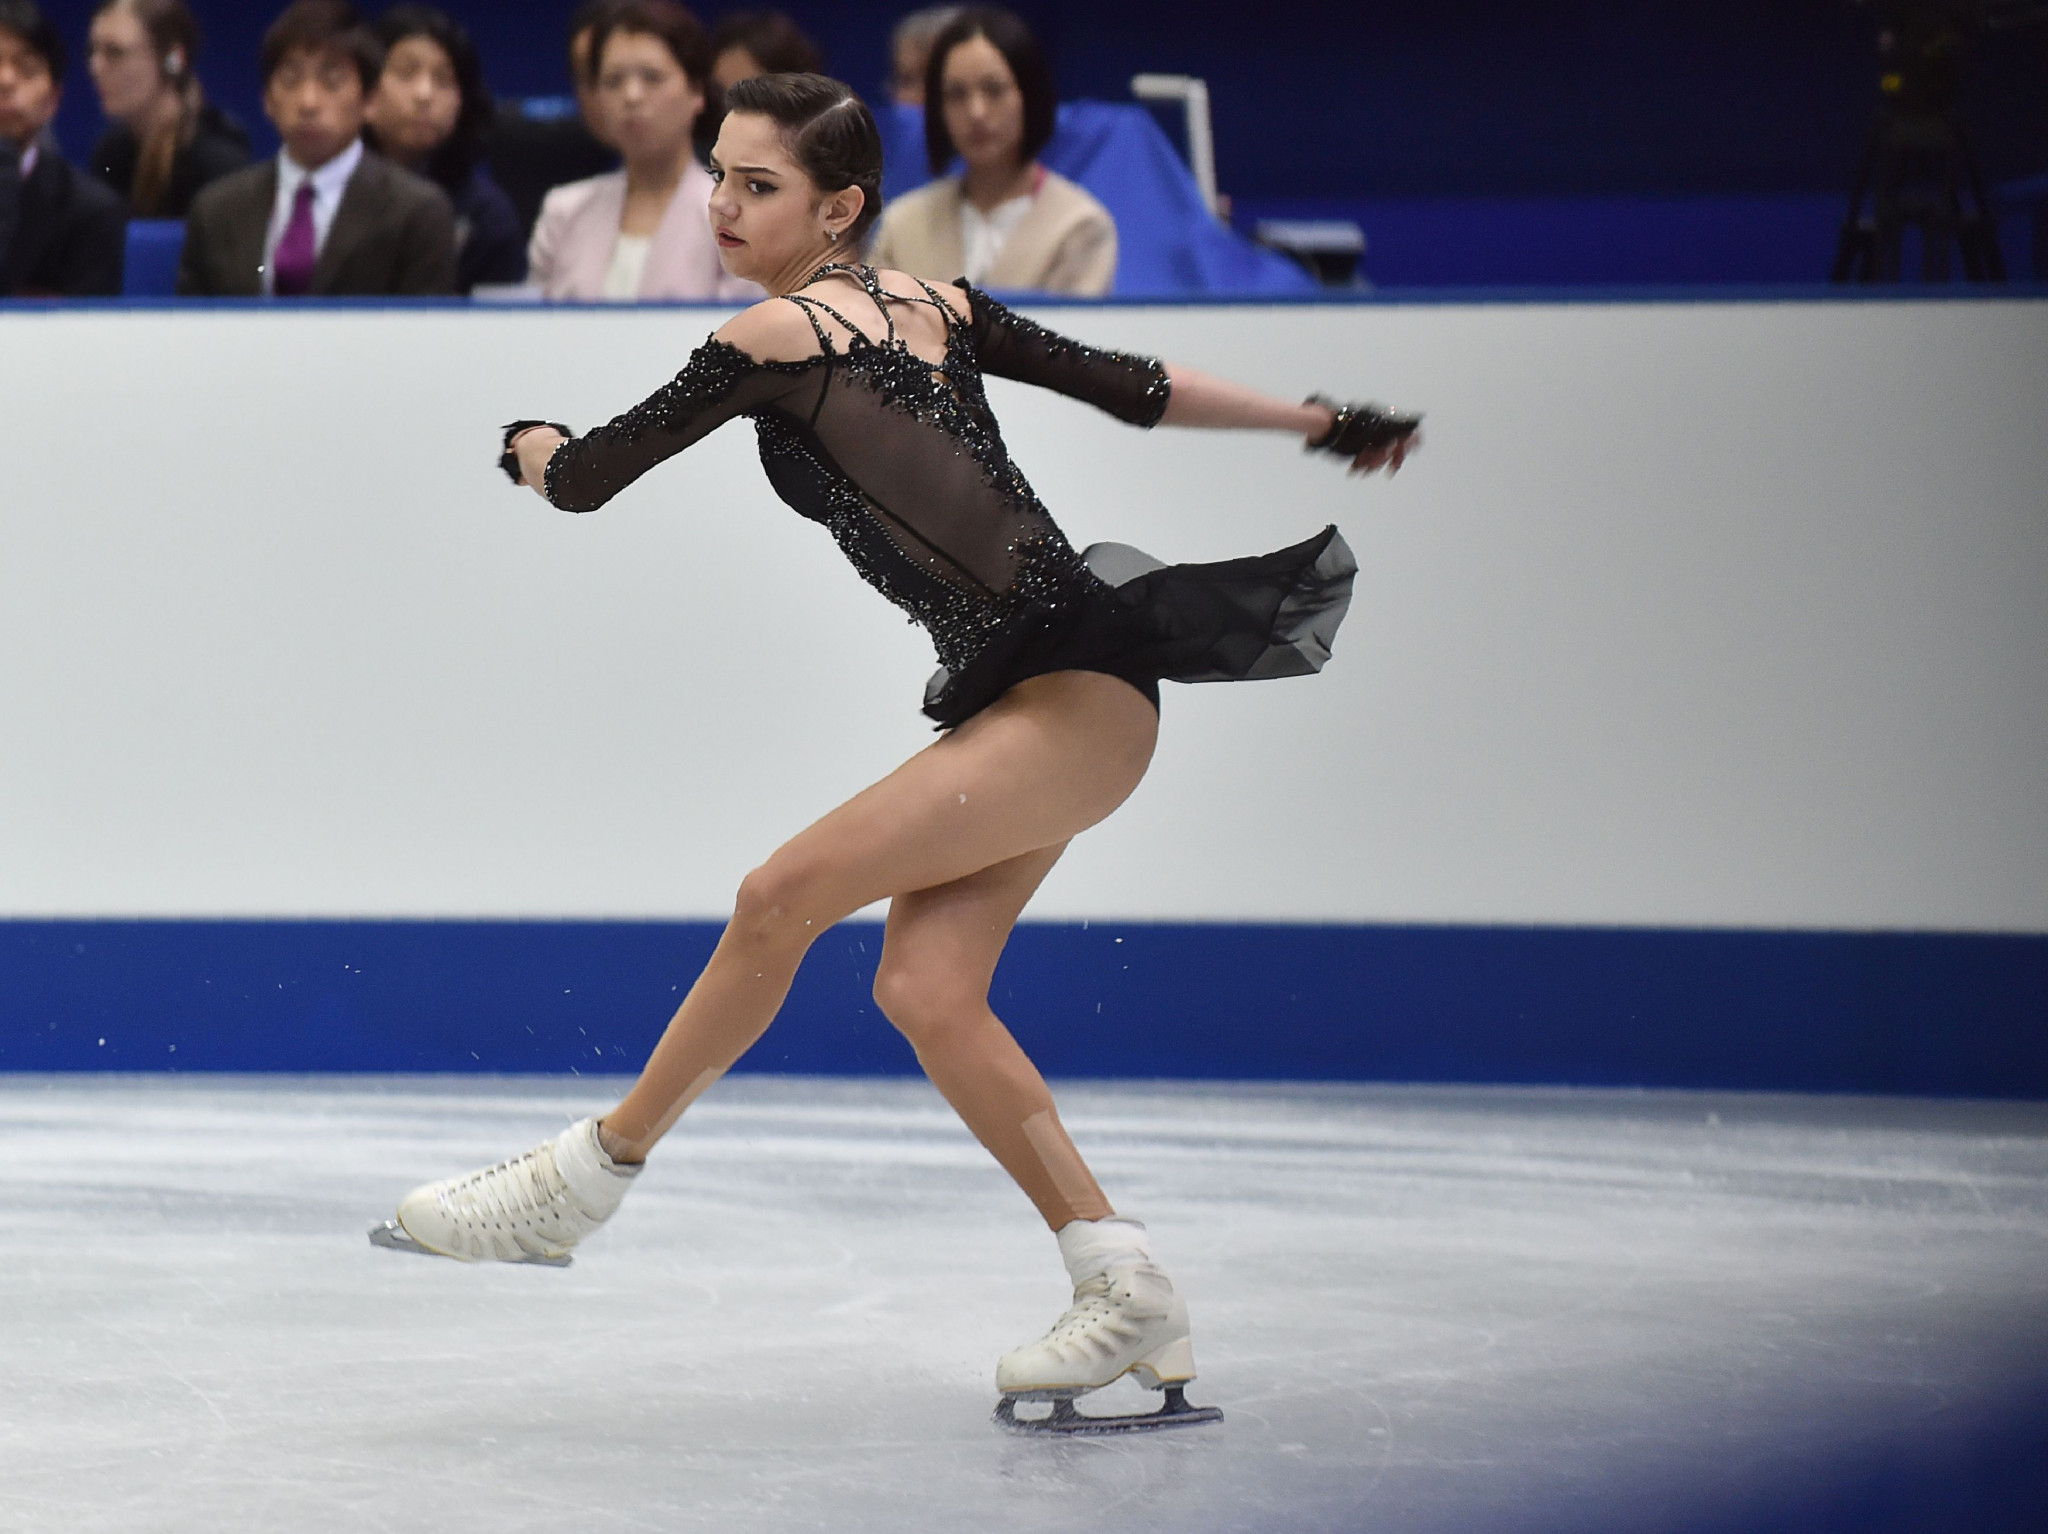 Evgenia Medvedeva will form part of the Russian delegation speaking to the IOC Executive Board ©Getty Images